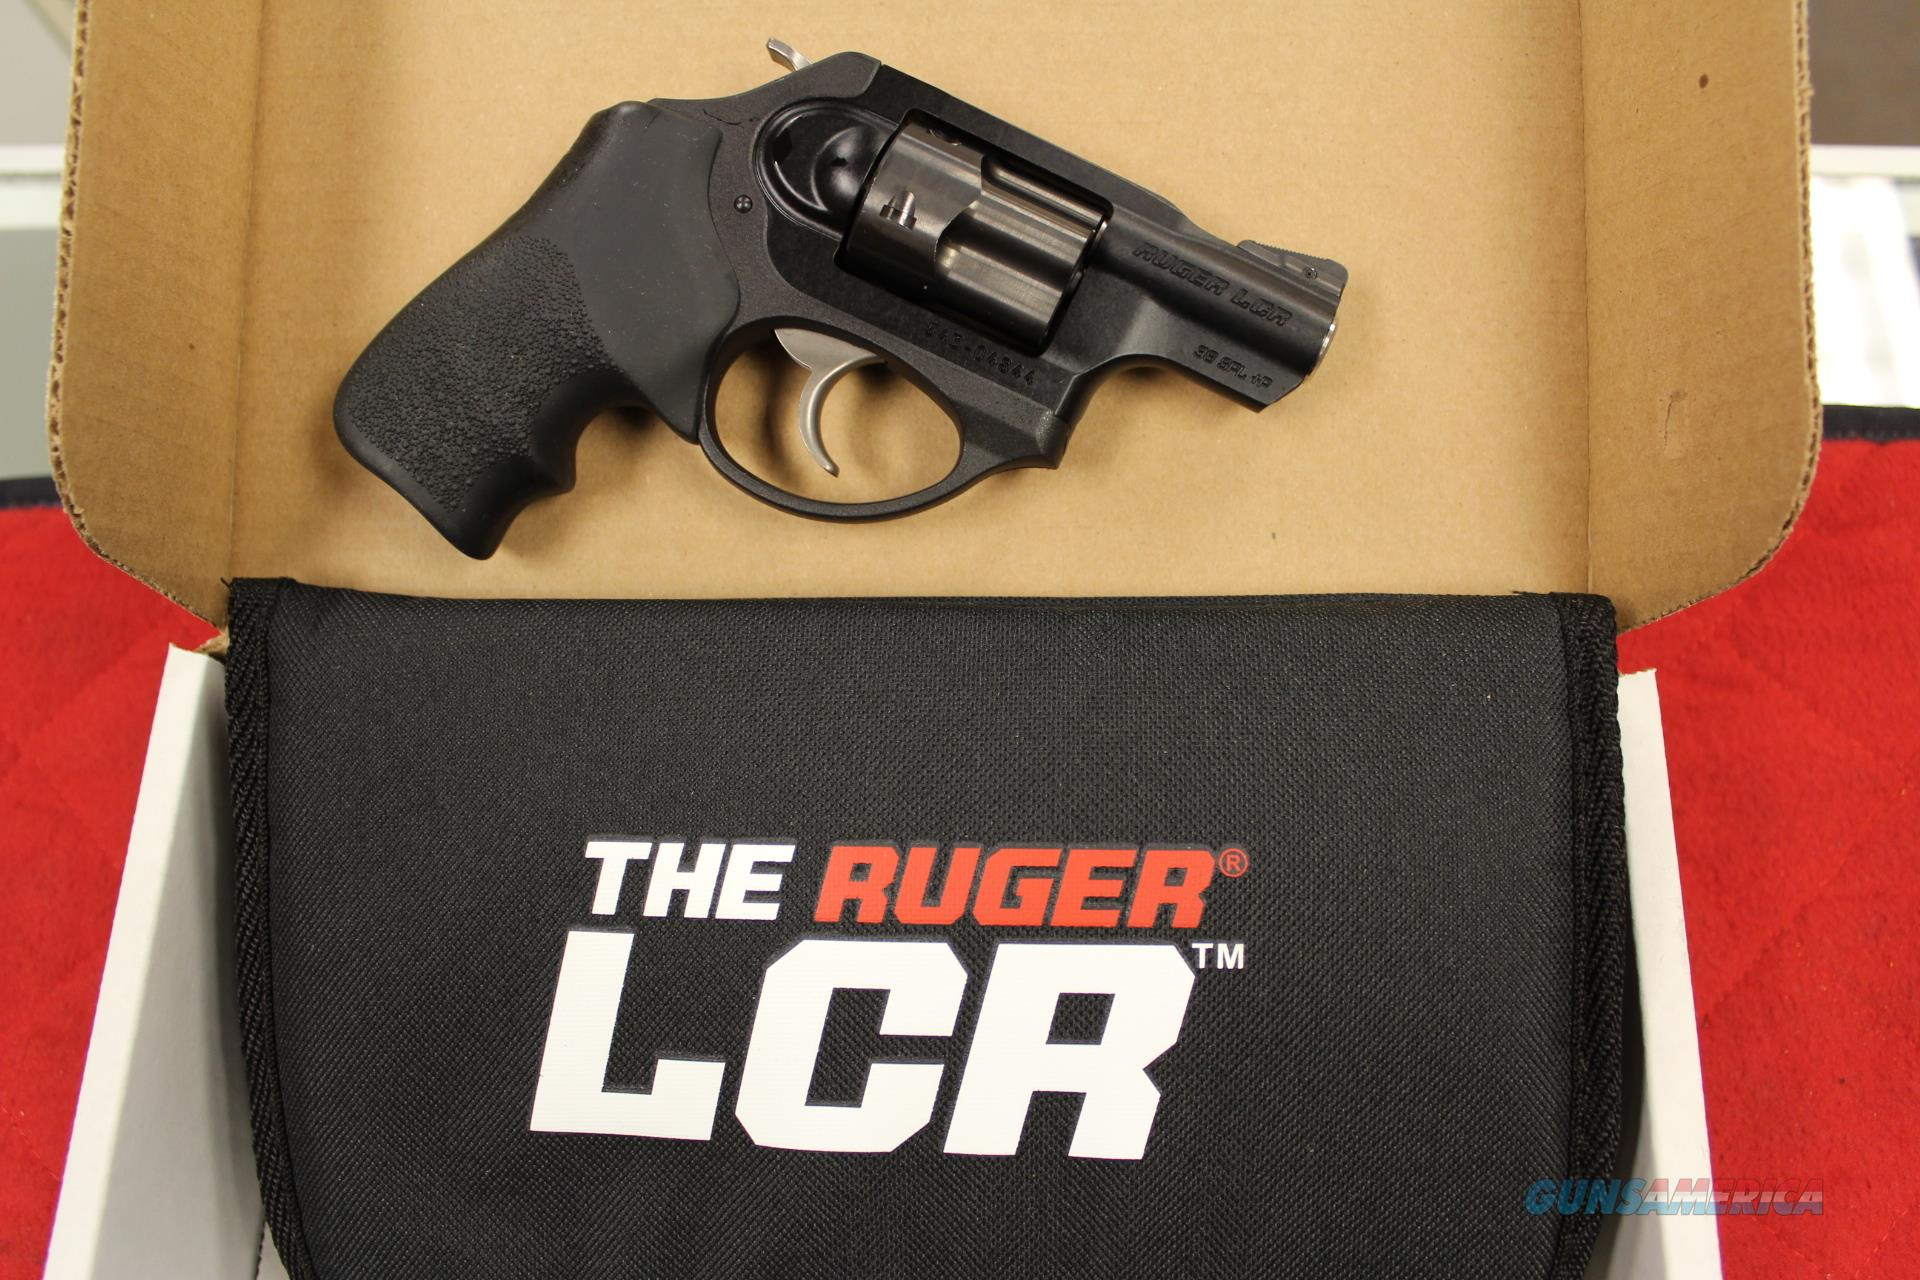 RUGER LCRX 38 +p NEW in BOX Clearance Priced! $45 Dollars BELOW dealer price!  Guns > Pistols > Ruger Double Action Revolver > LCR